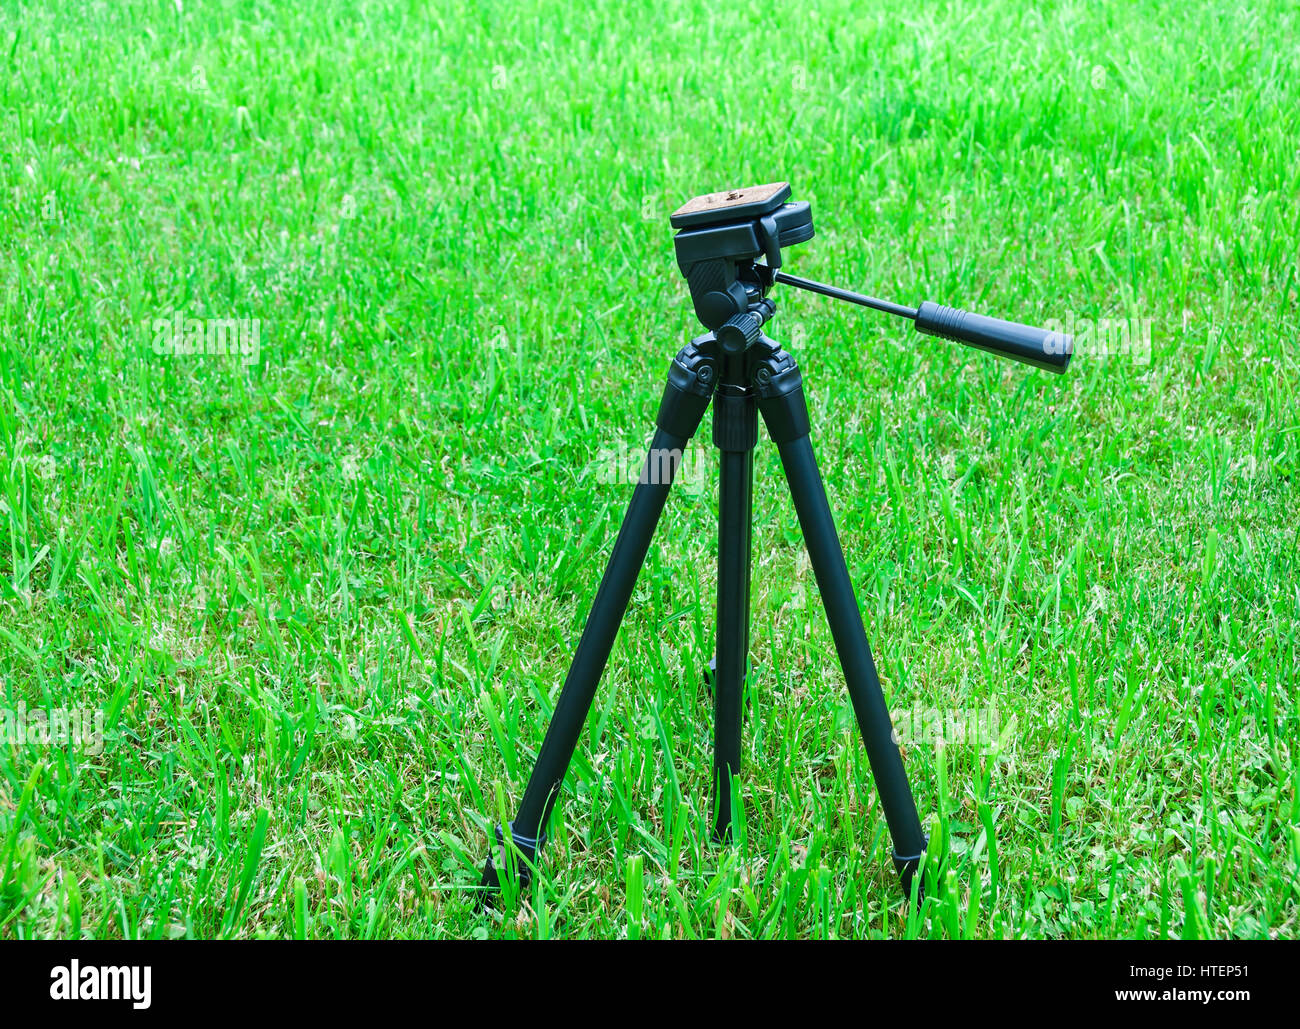 A tripod for the camera on natural background - Stock Image